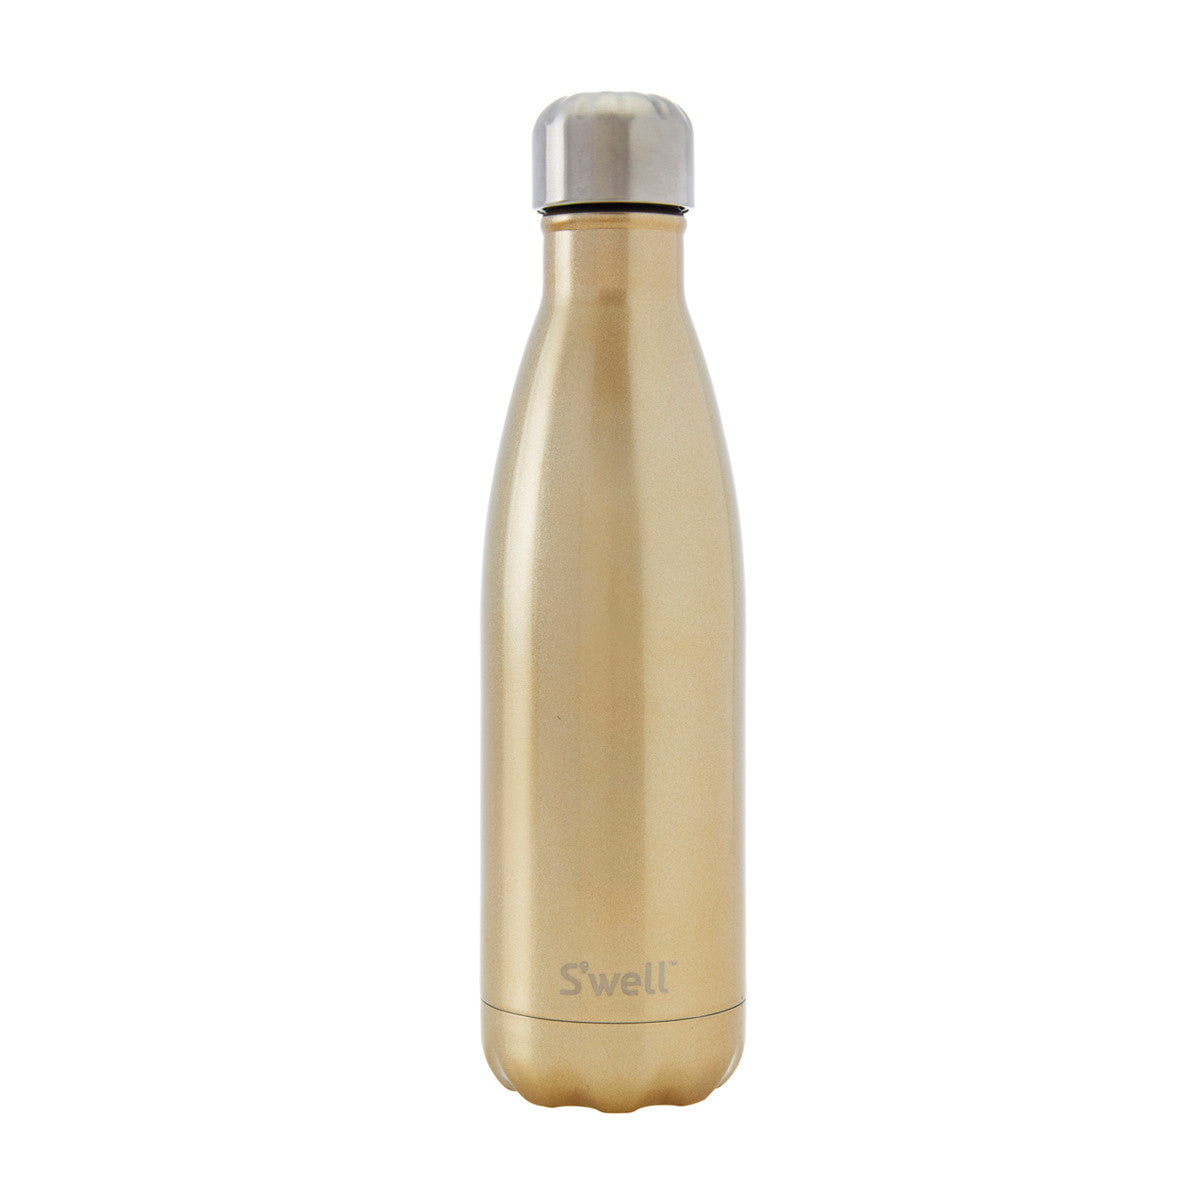 S'well Bottle - Glitter collection - Sparkling Champagne, 500ml